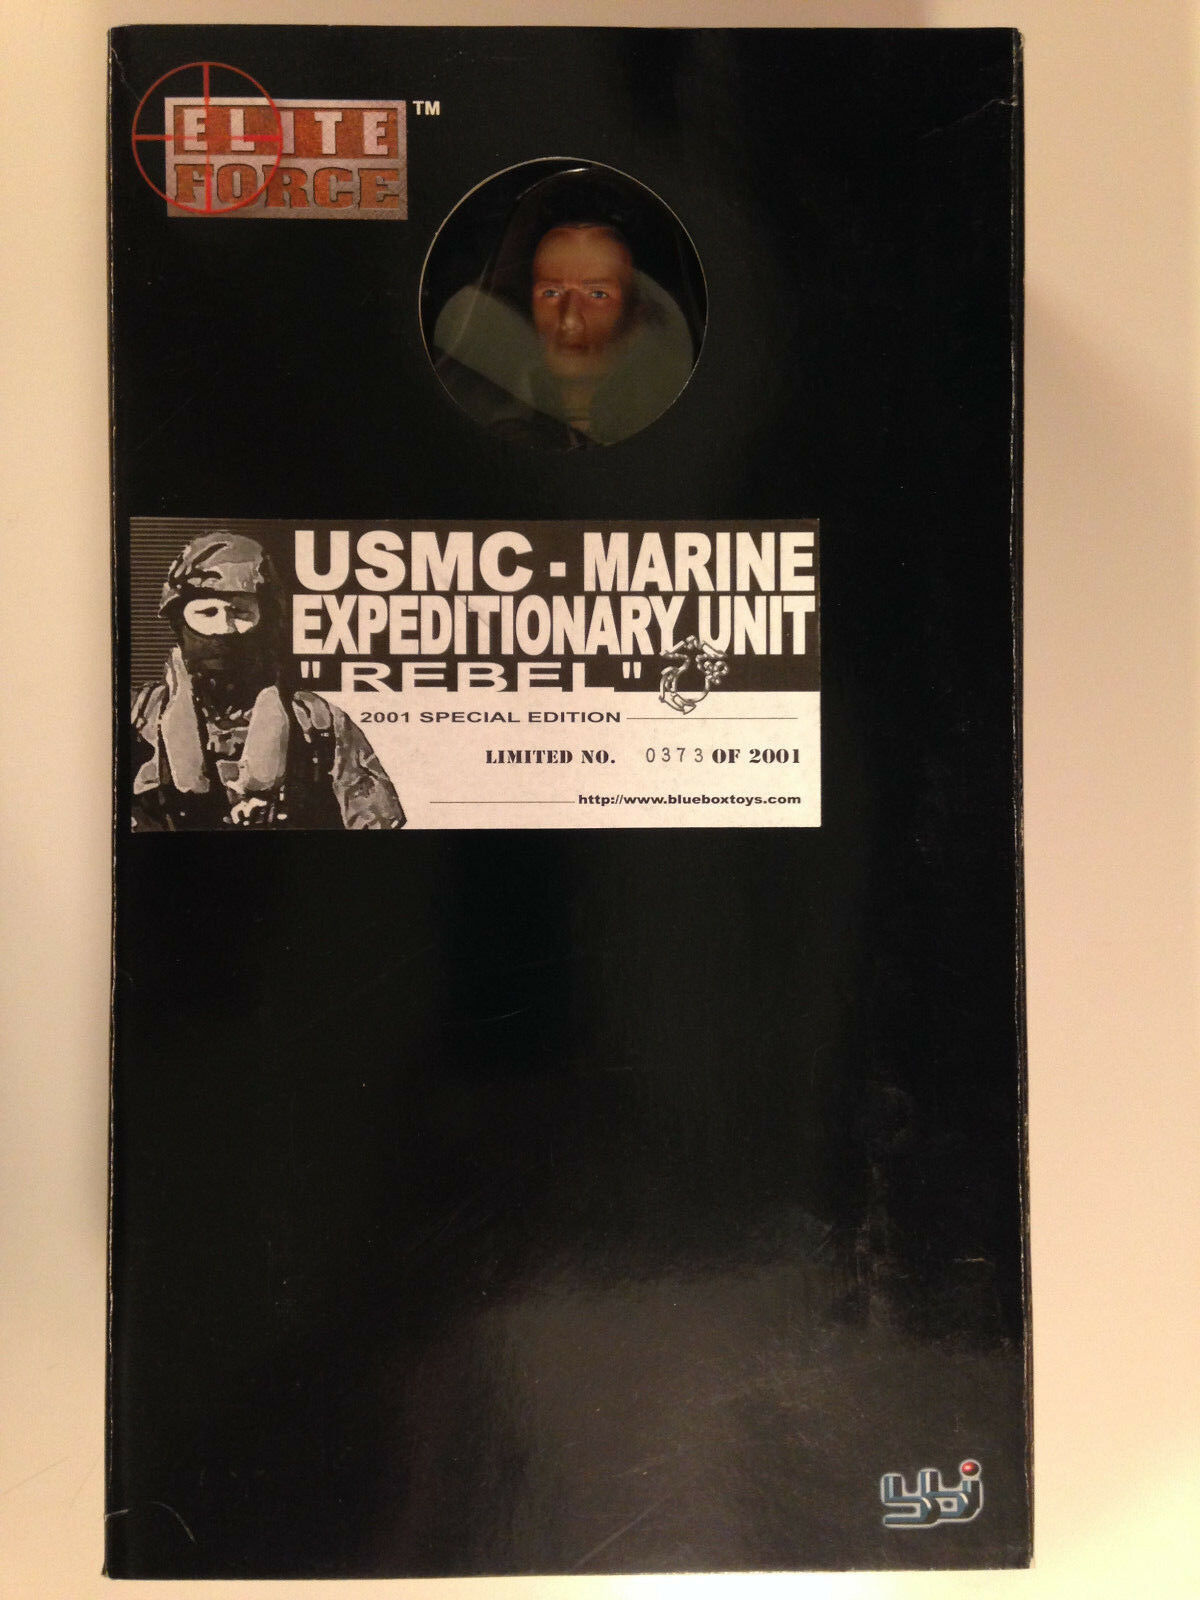 Elite Force 12  Usmc Marine expedicionarias Unidad Rebel Limitada Figura Bbi azul Box